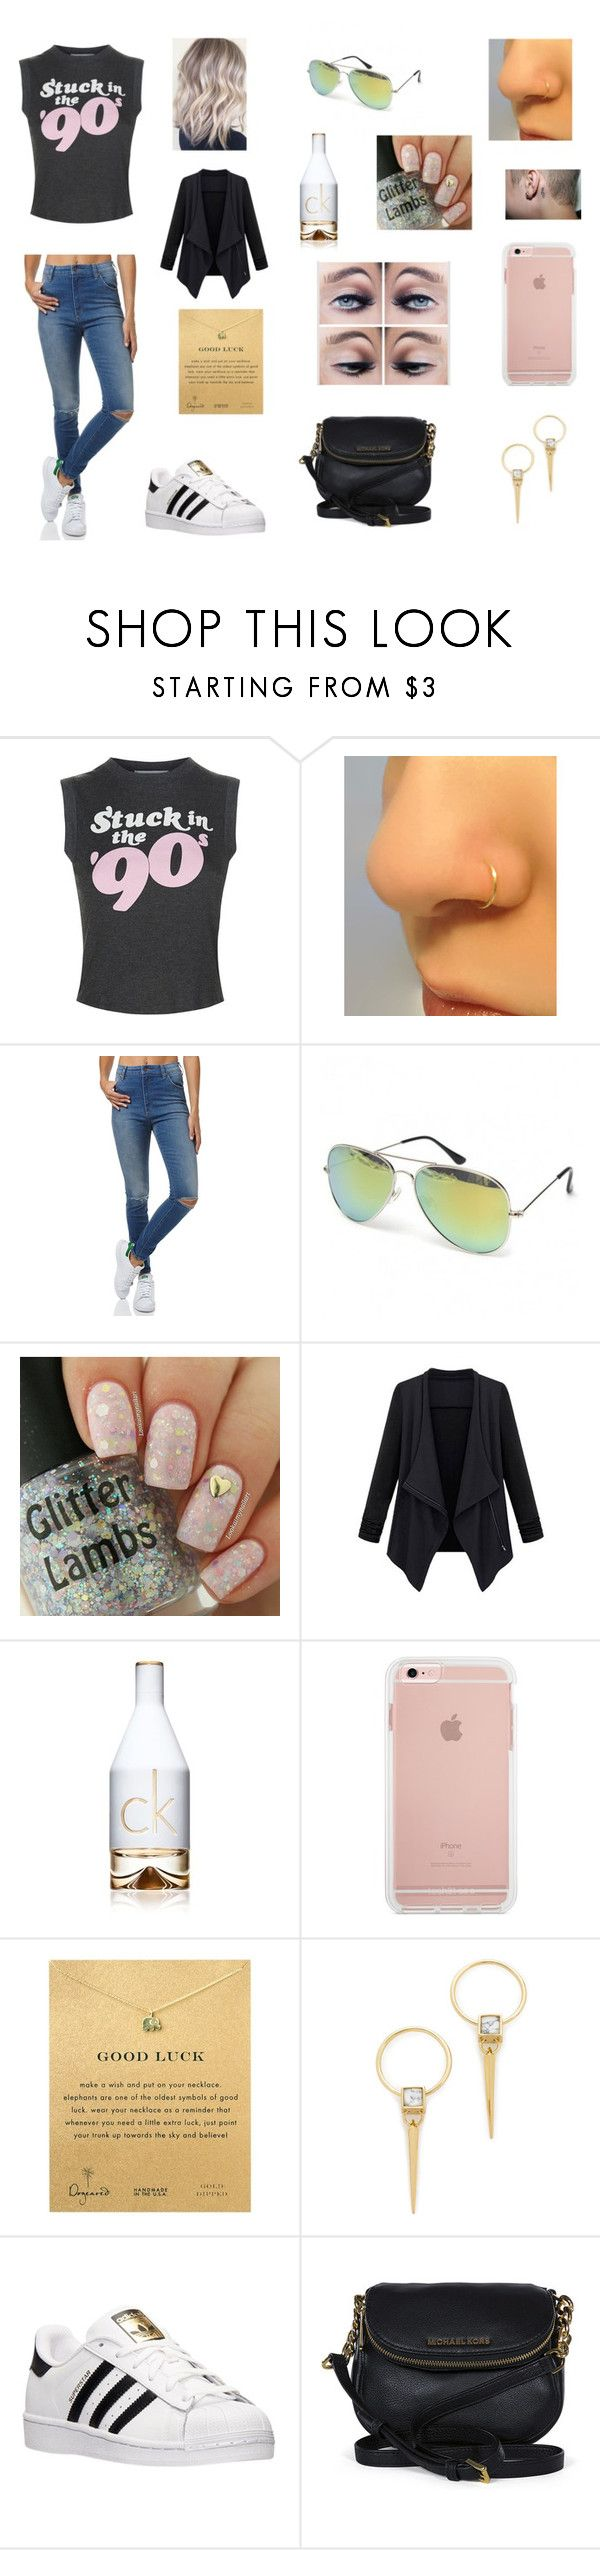 Untitled #228 by katrine-frid on Polyvore featuring Wildfox, Wrangler, adidas, Michael Kors, Dogeared, Alexis Bittar and Calvin Klein